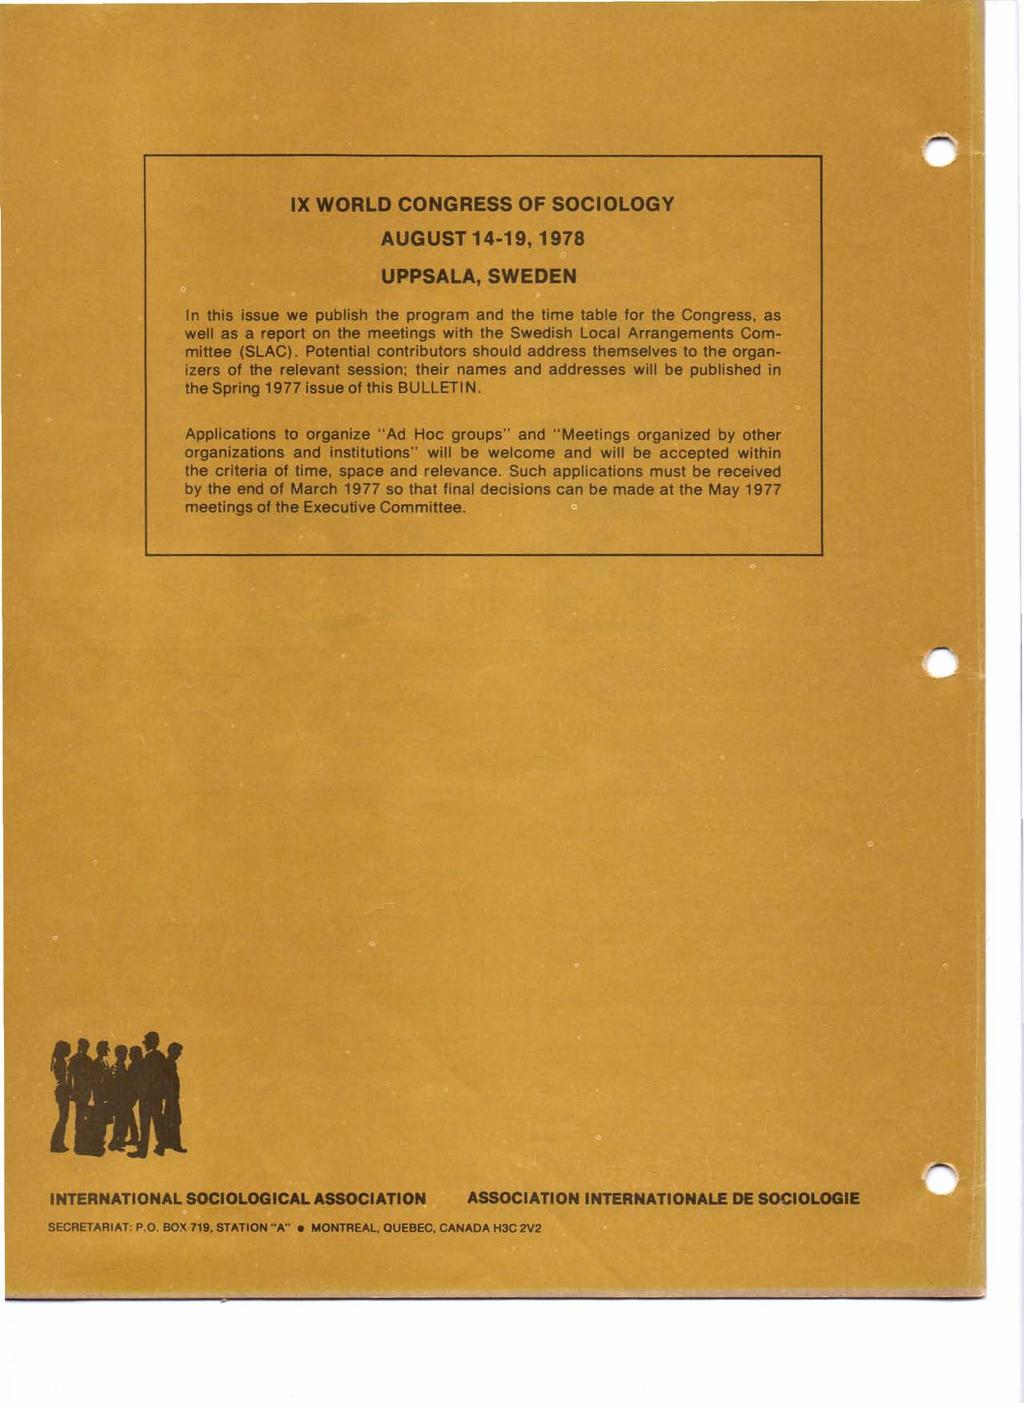 IX WORLD CONGRESS OF SOCIOLOGY AUGUST 14-19,1978 UPPSALA, SWEDEN In this issue we publish the program and the time table for the Congress, as well as a report on the meetings with the Swedish Local